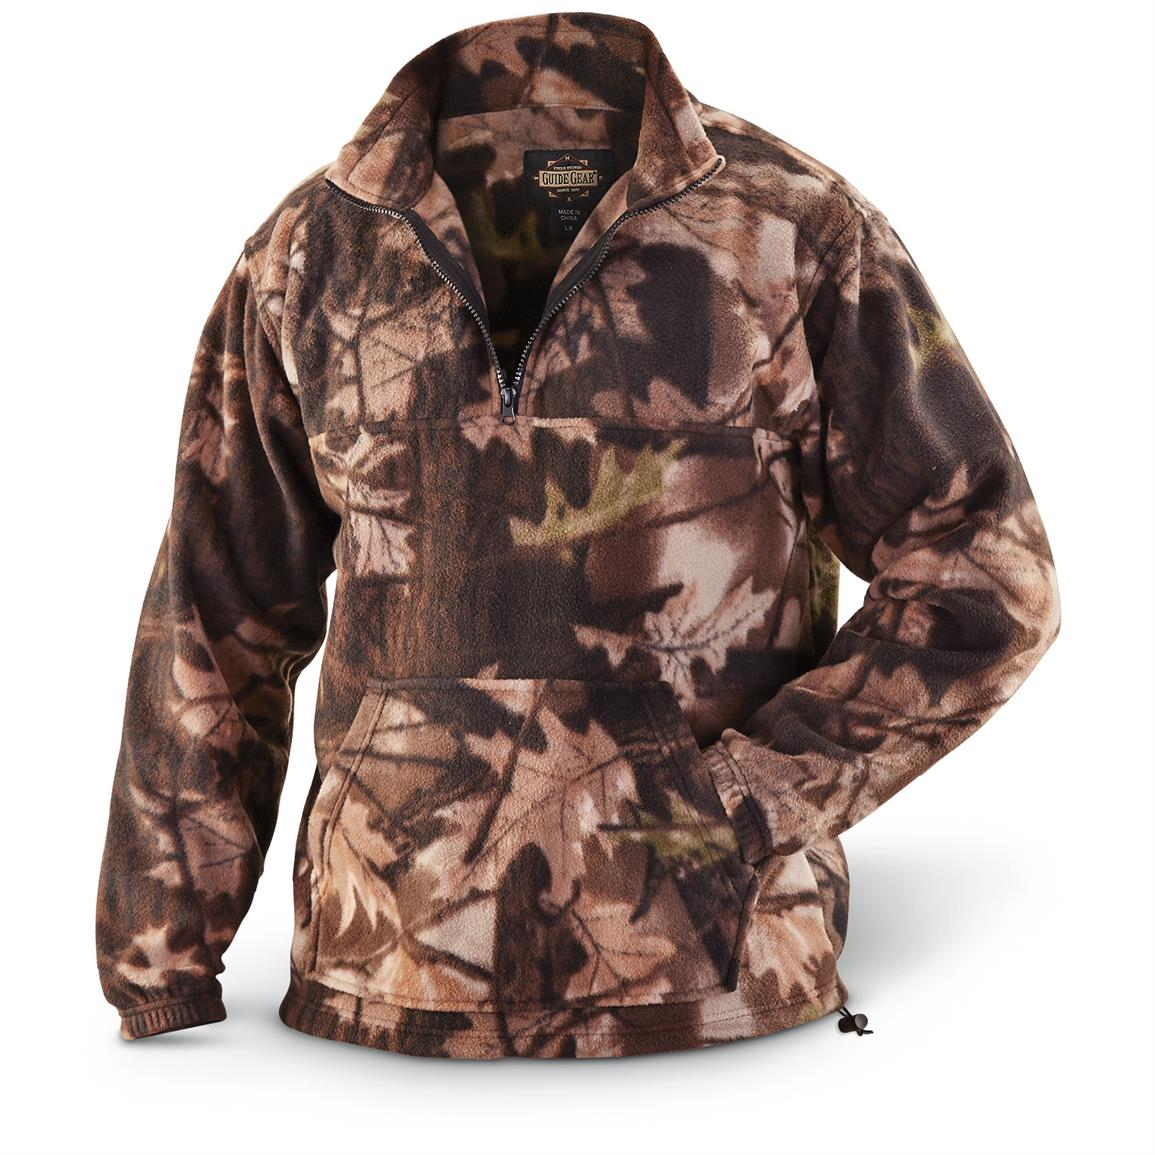 Guide Gear Men's Quarter Zip Camo Fleece Pullover Jacket